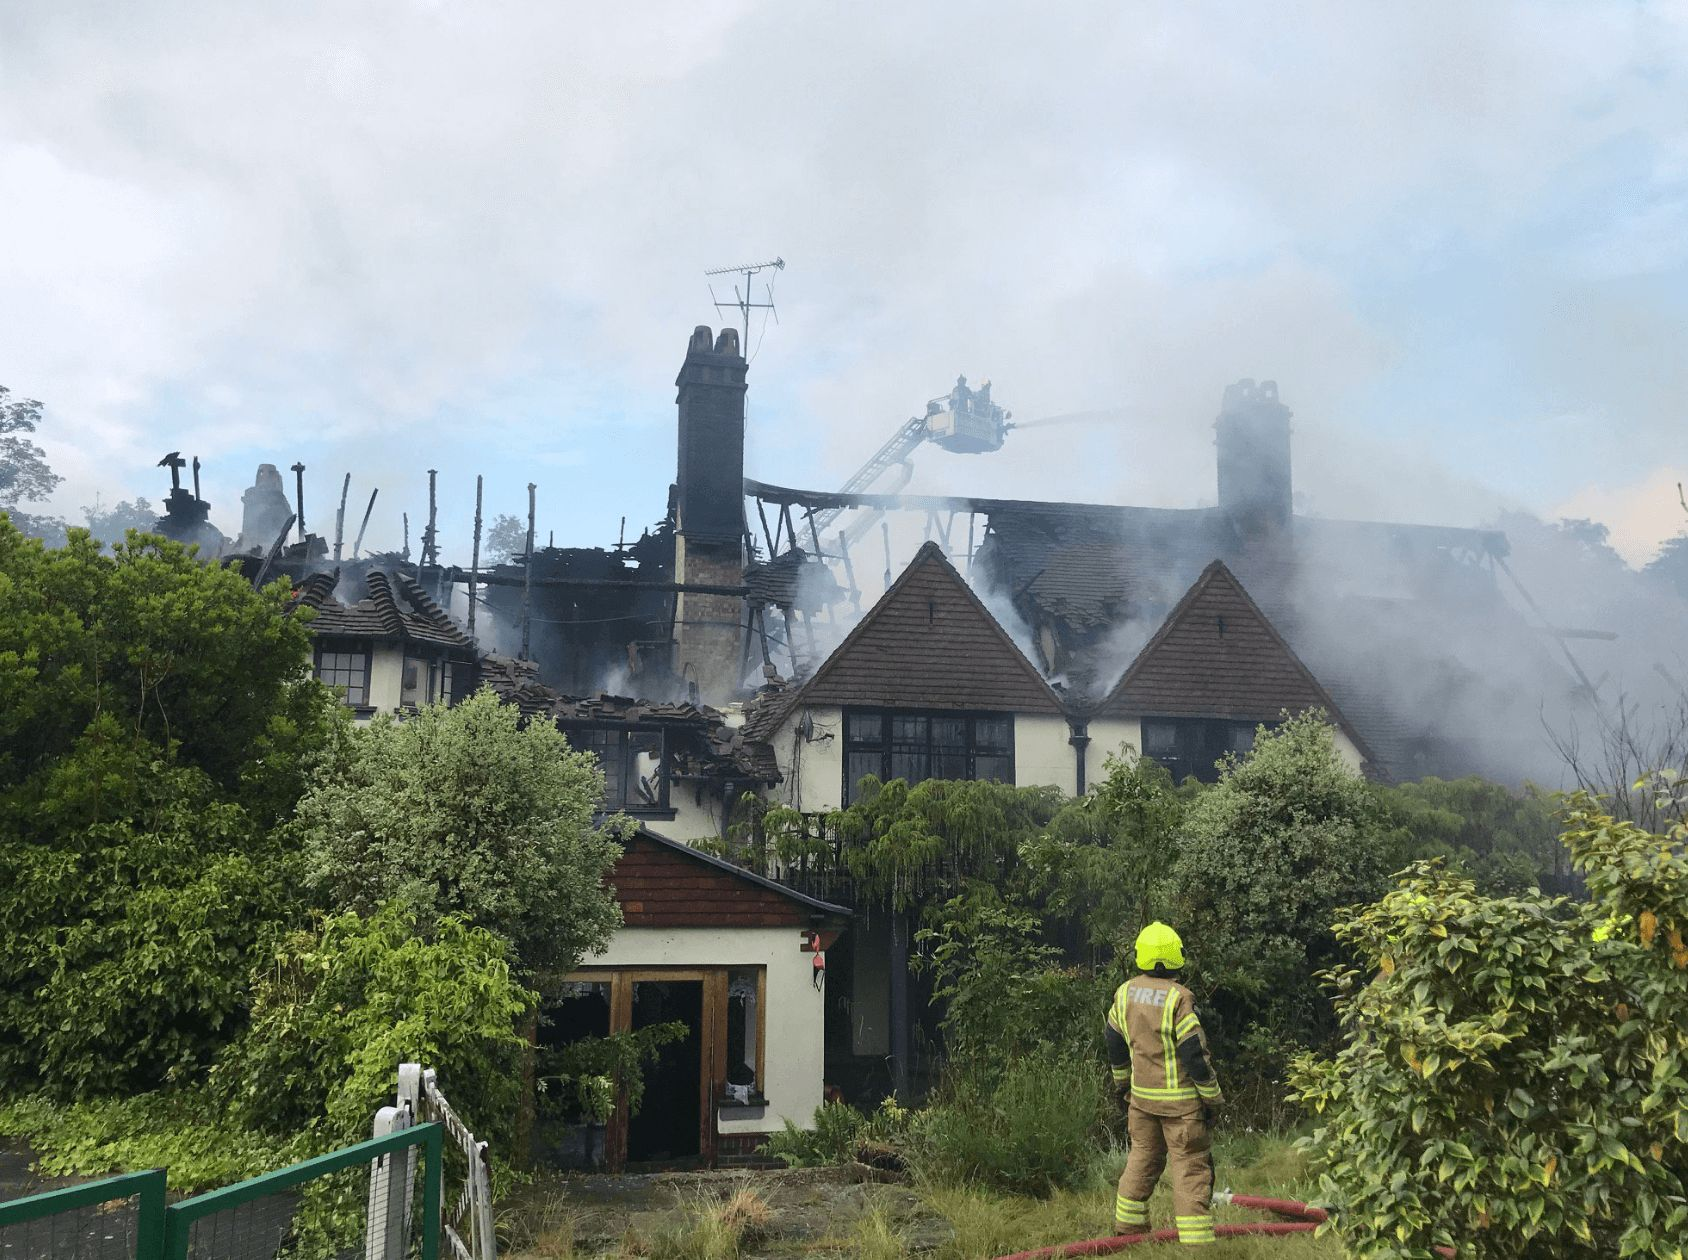 Image may contain: Oritse Williams house fire, Oritse Williams, JLS, house, fire, mansion, burned down, damage, pictures, news, Nature, Building, Outdoors, Roof, Human, Person